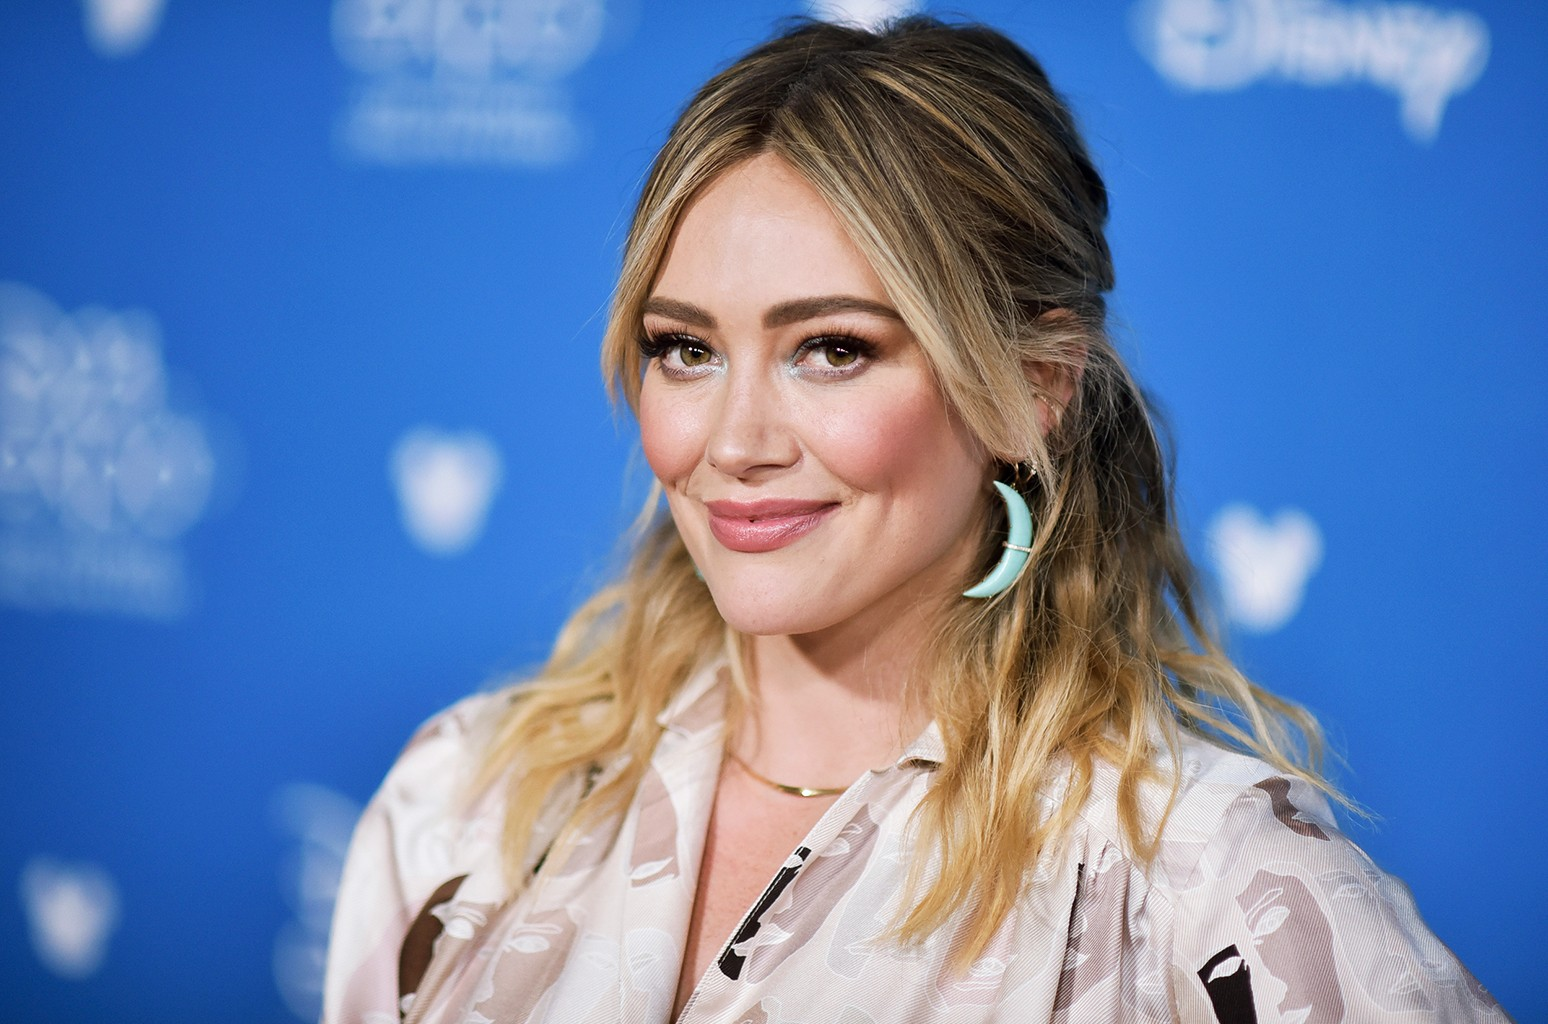 Hilary Duff in Quarantine Due to COVID-19 Exposure - Billboard